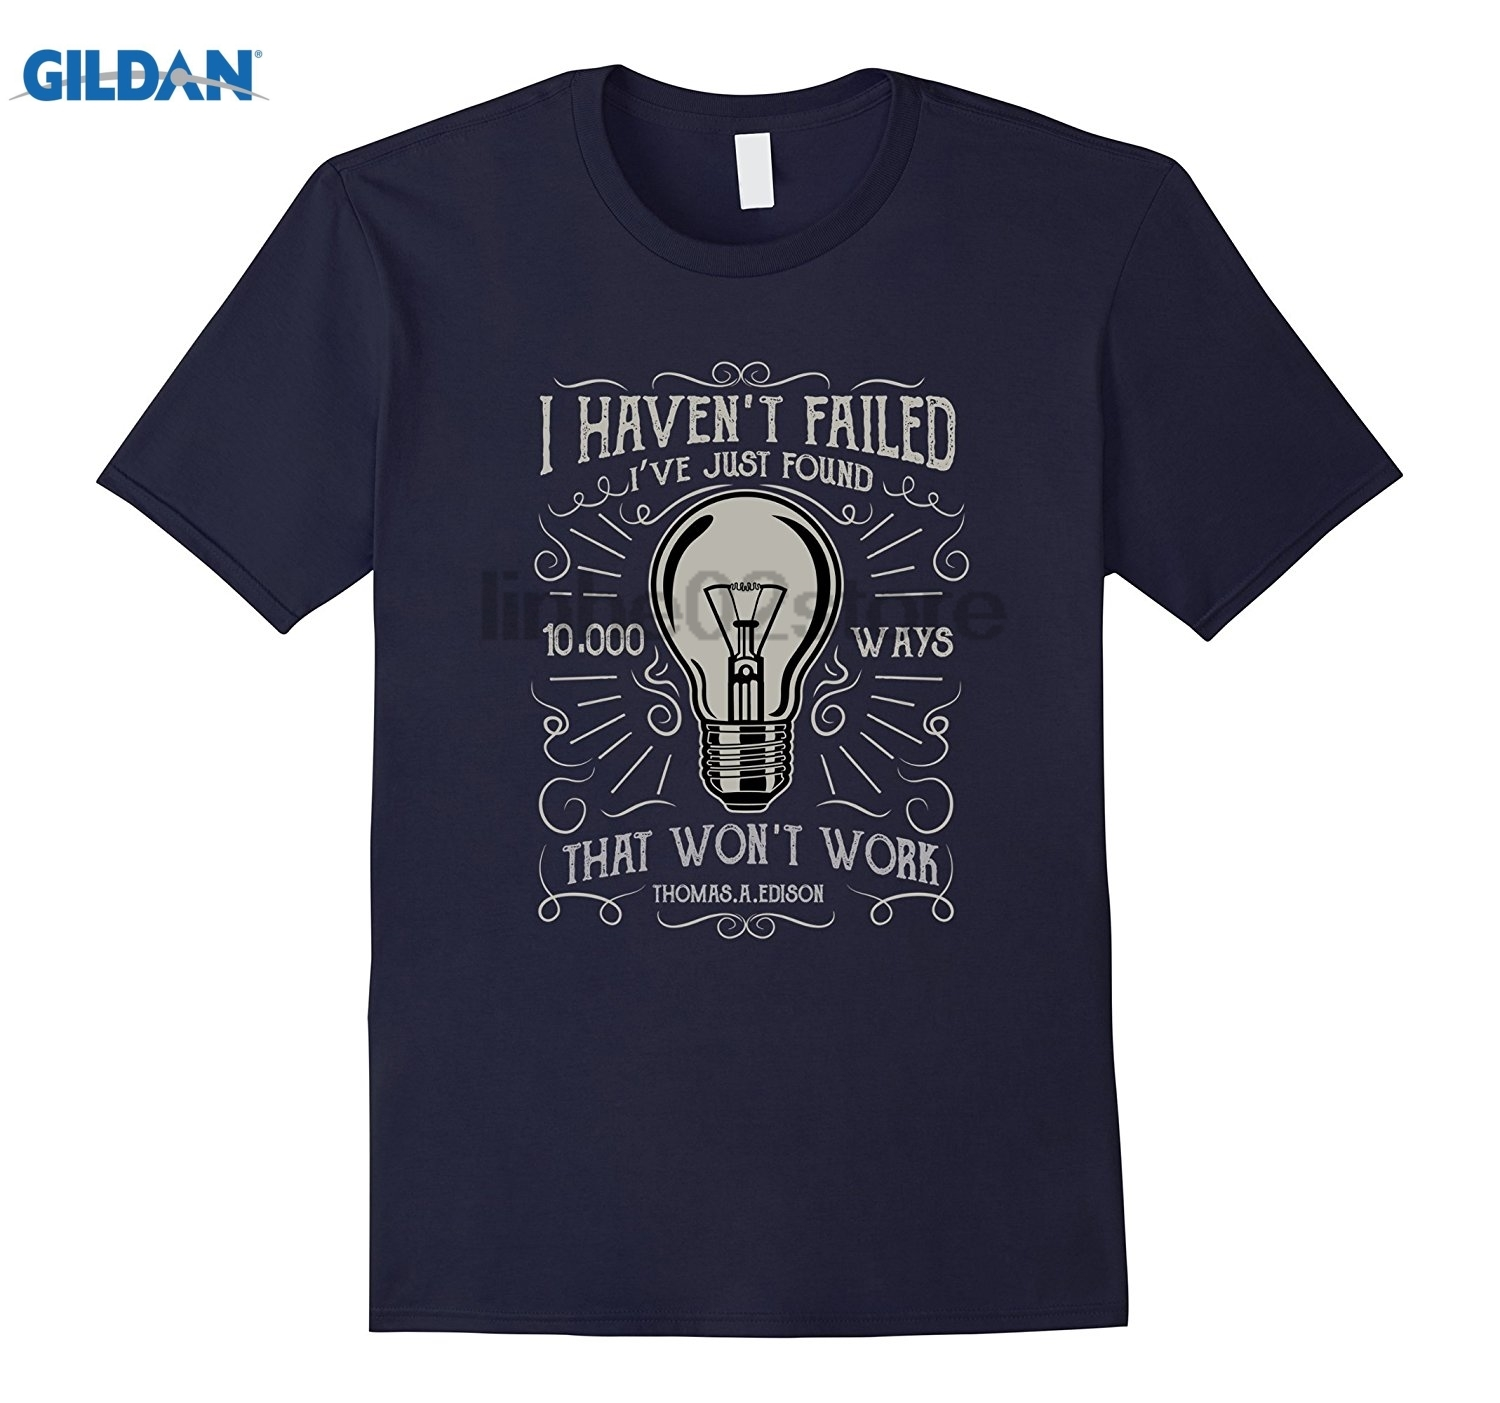 GILDAN I havent failed. Great Thomas Edison memorial tee. dress T-shirt Womens T-shirt